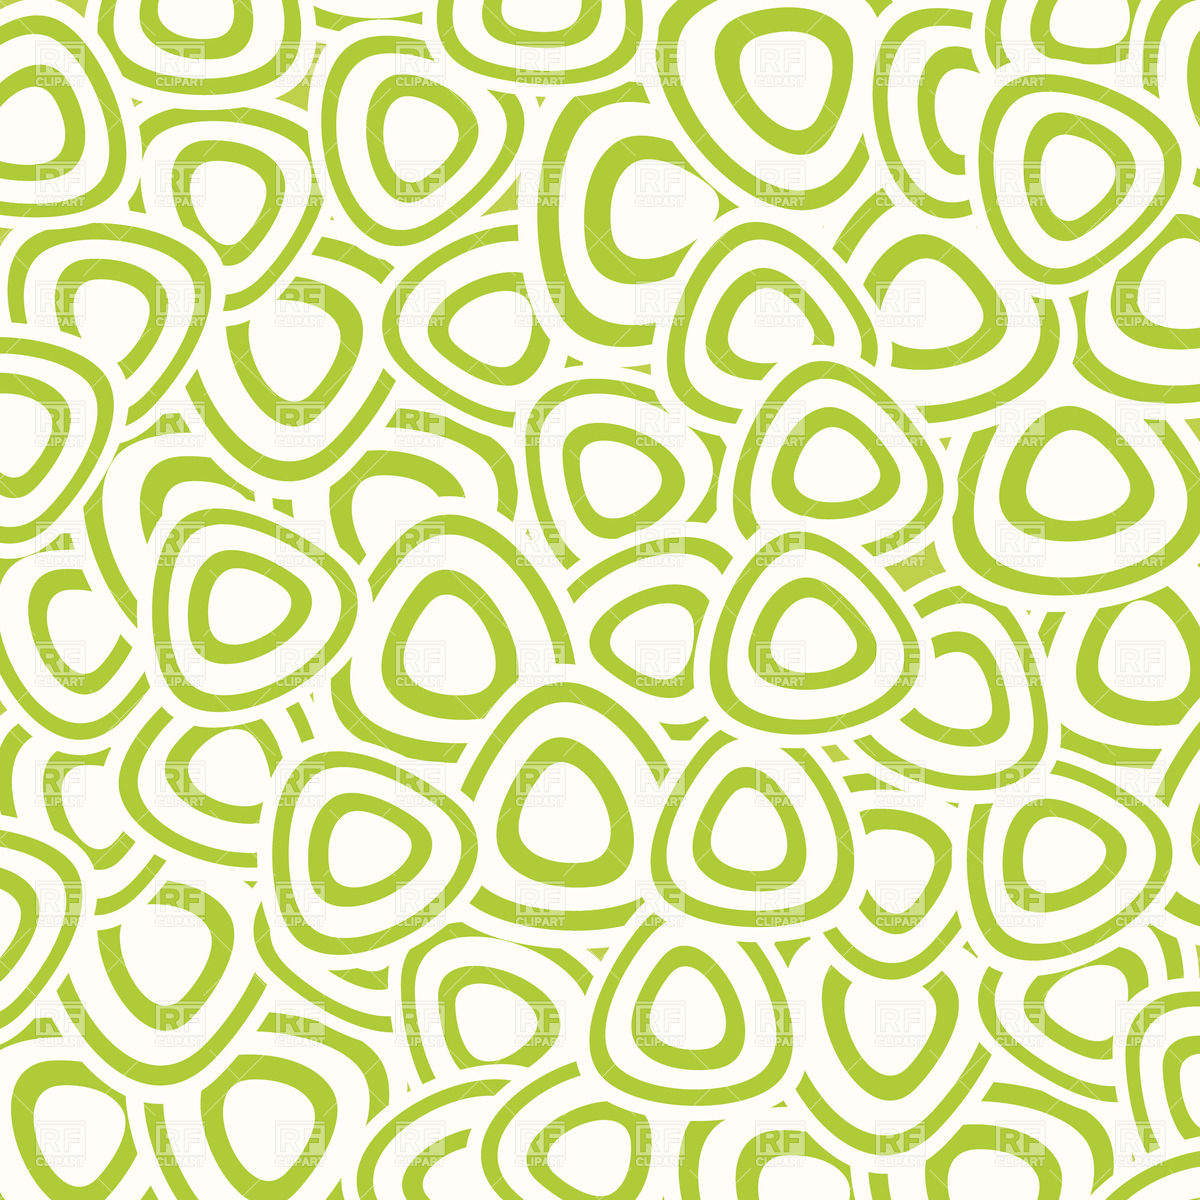 Abstract pattern made of green rounded triangles Vector Image.